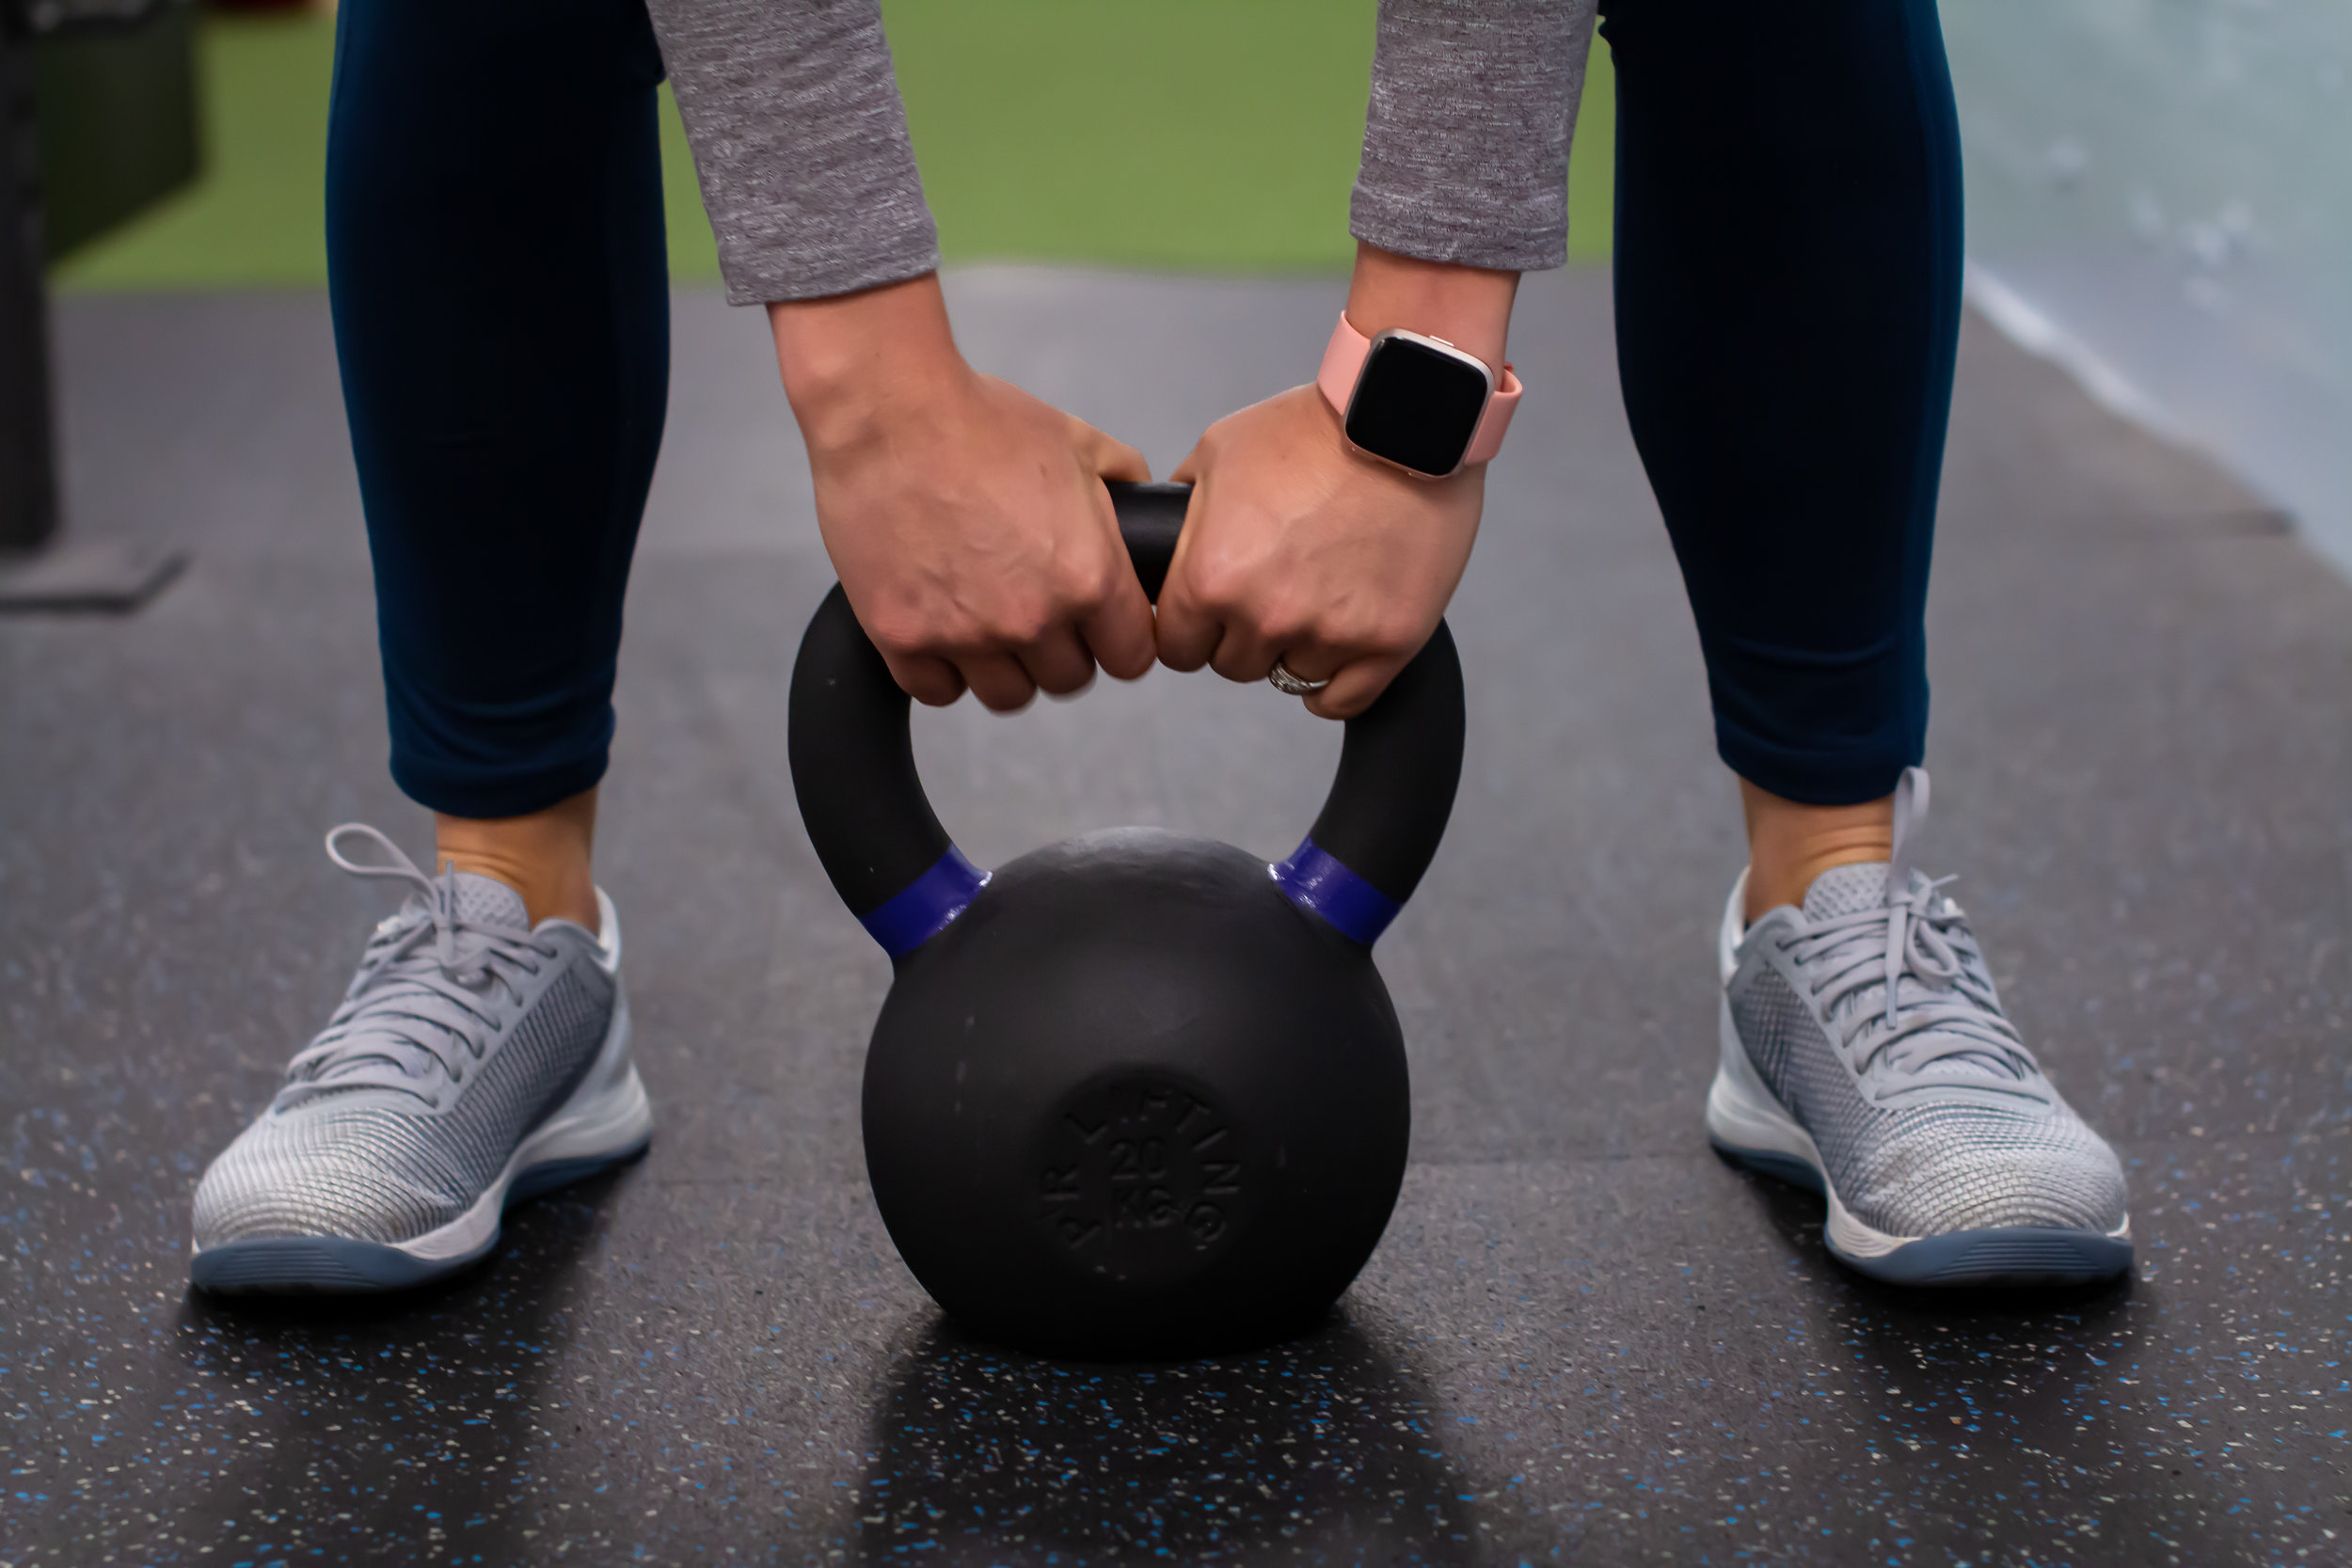 Patient lifting a kettle bell